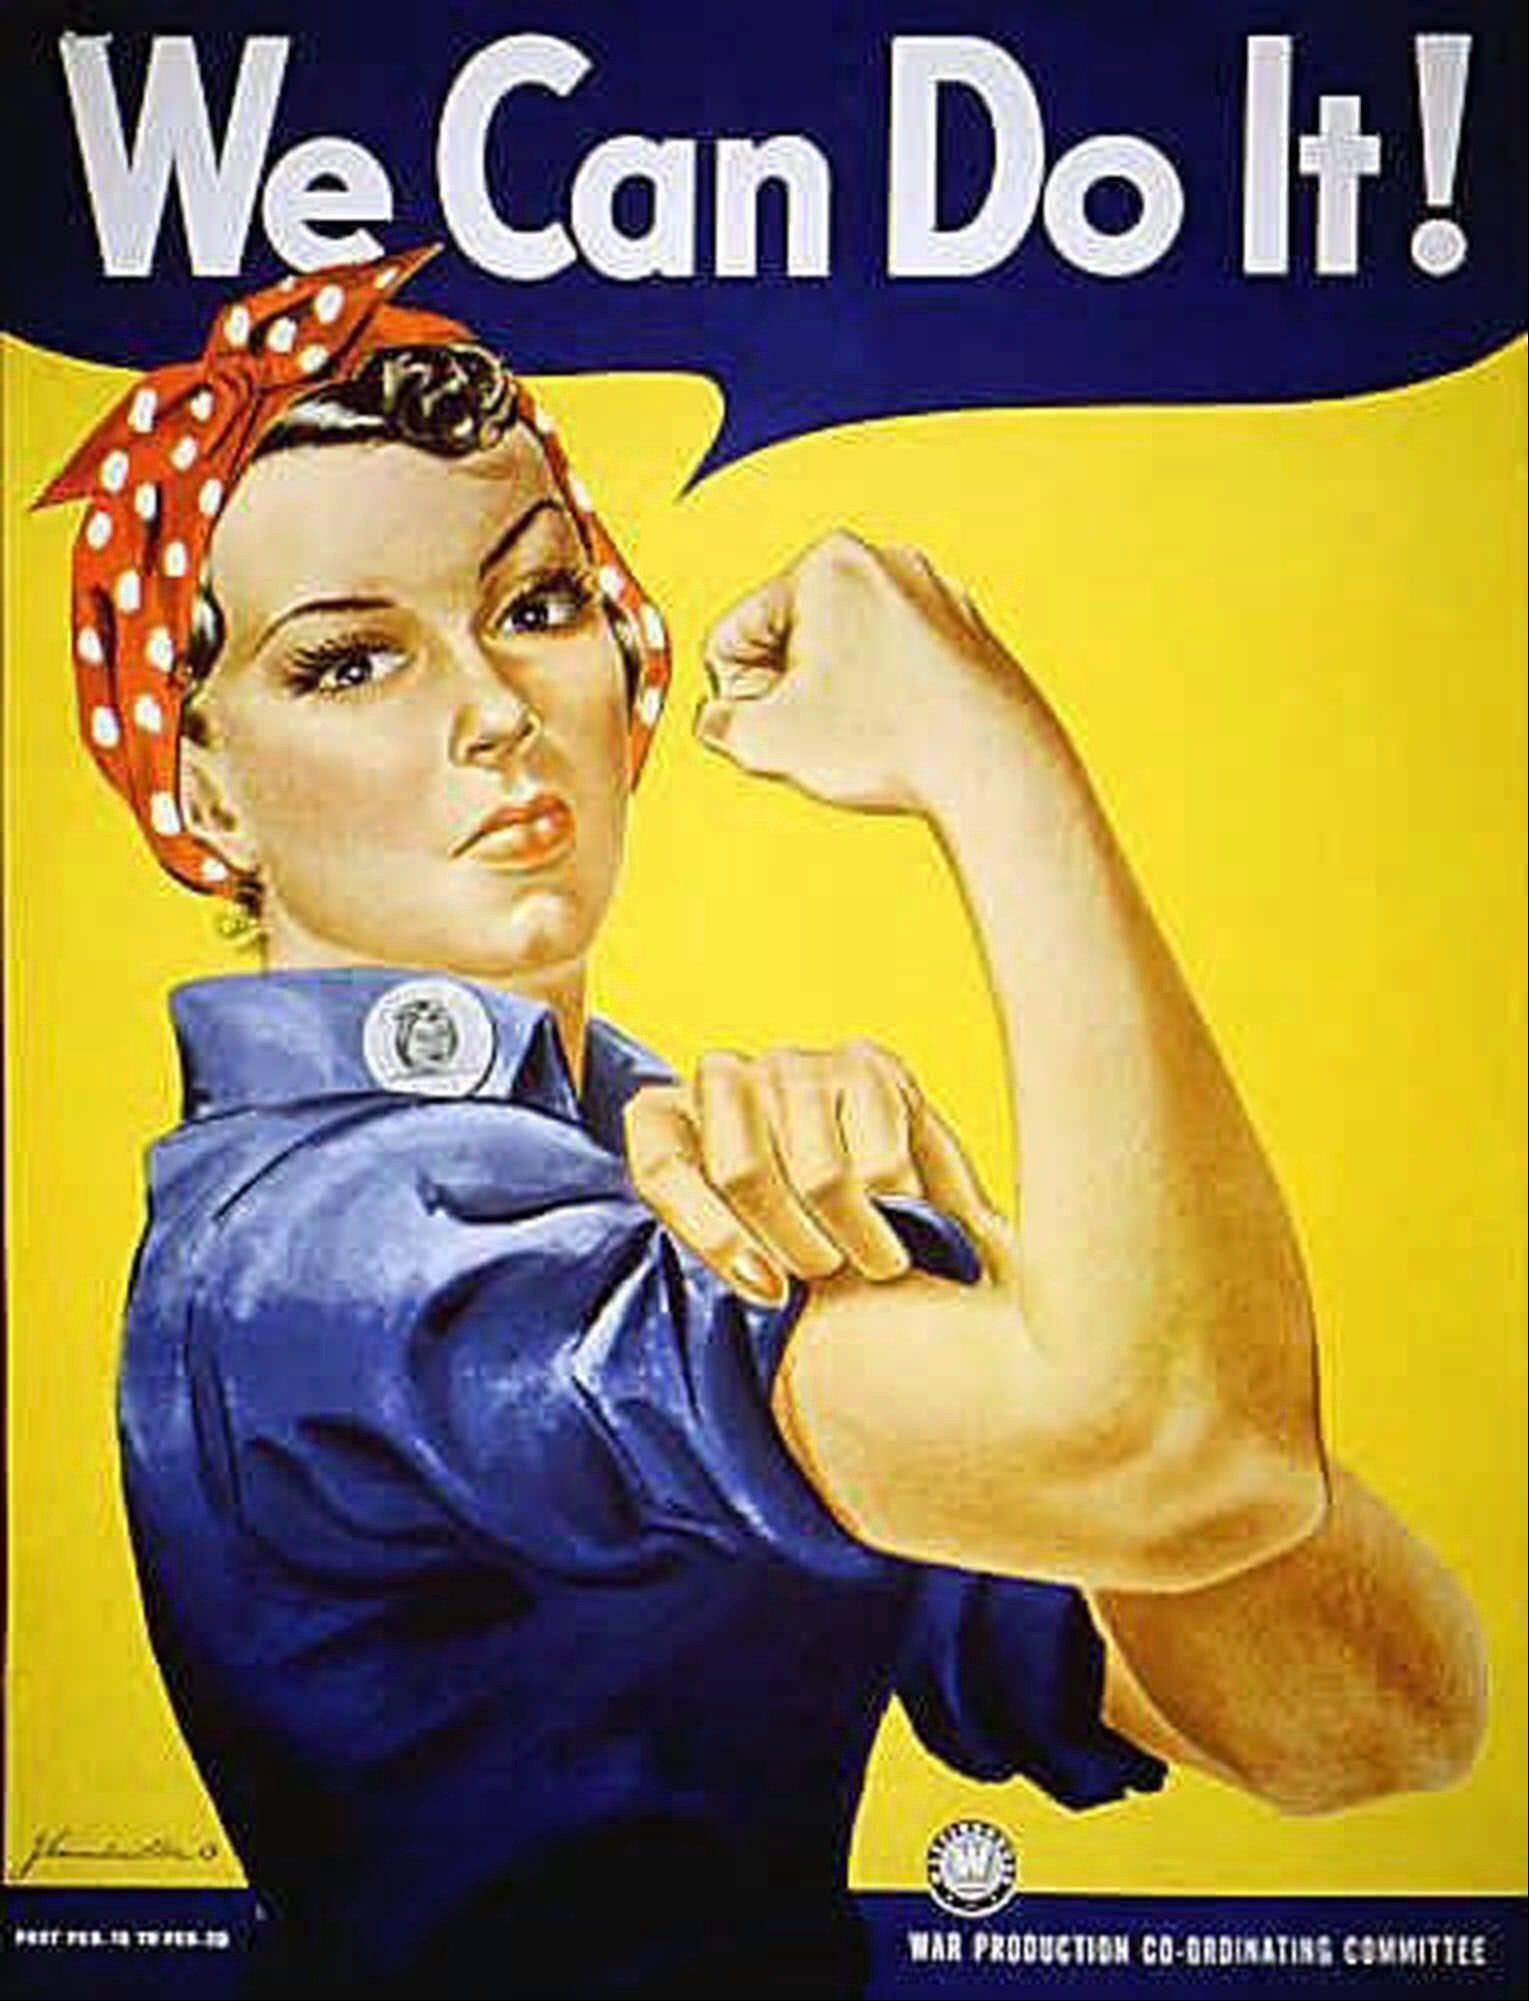 """Rosie the Riveter"" dressed in overalls and bandanna was introduced as a symbol of patriotic womanhood in the 1940's. Rose Will Monroe played ""Rosie the Riveter,"" the nation's poster girl for women joining the work force during World War II."